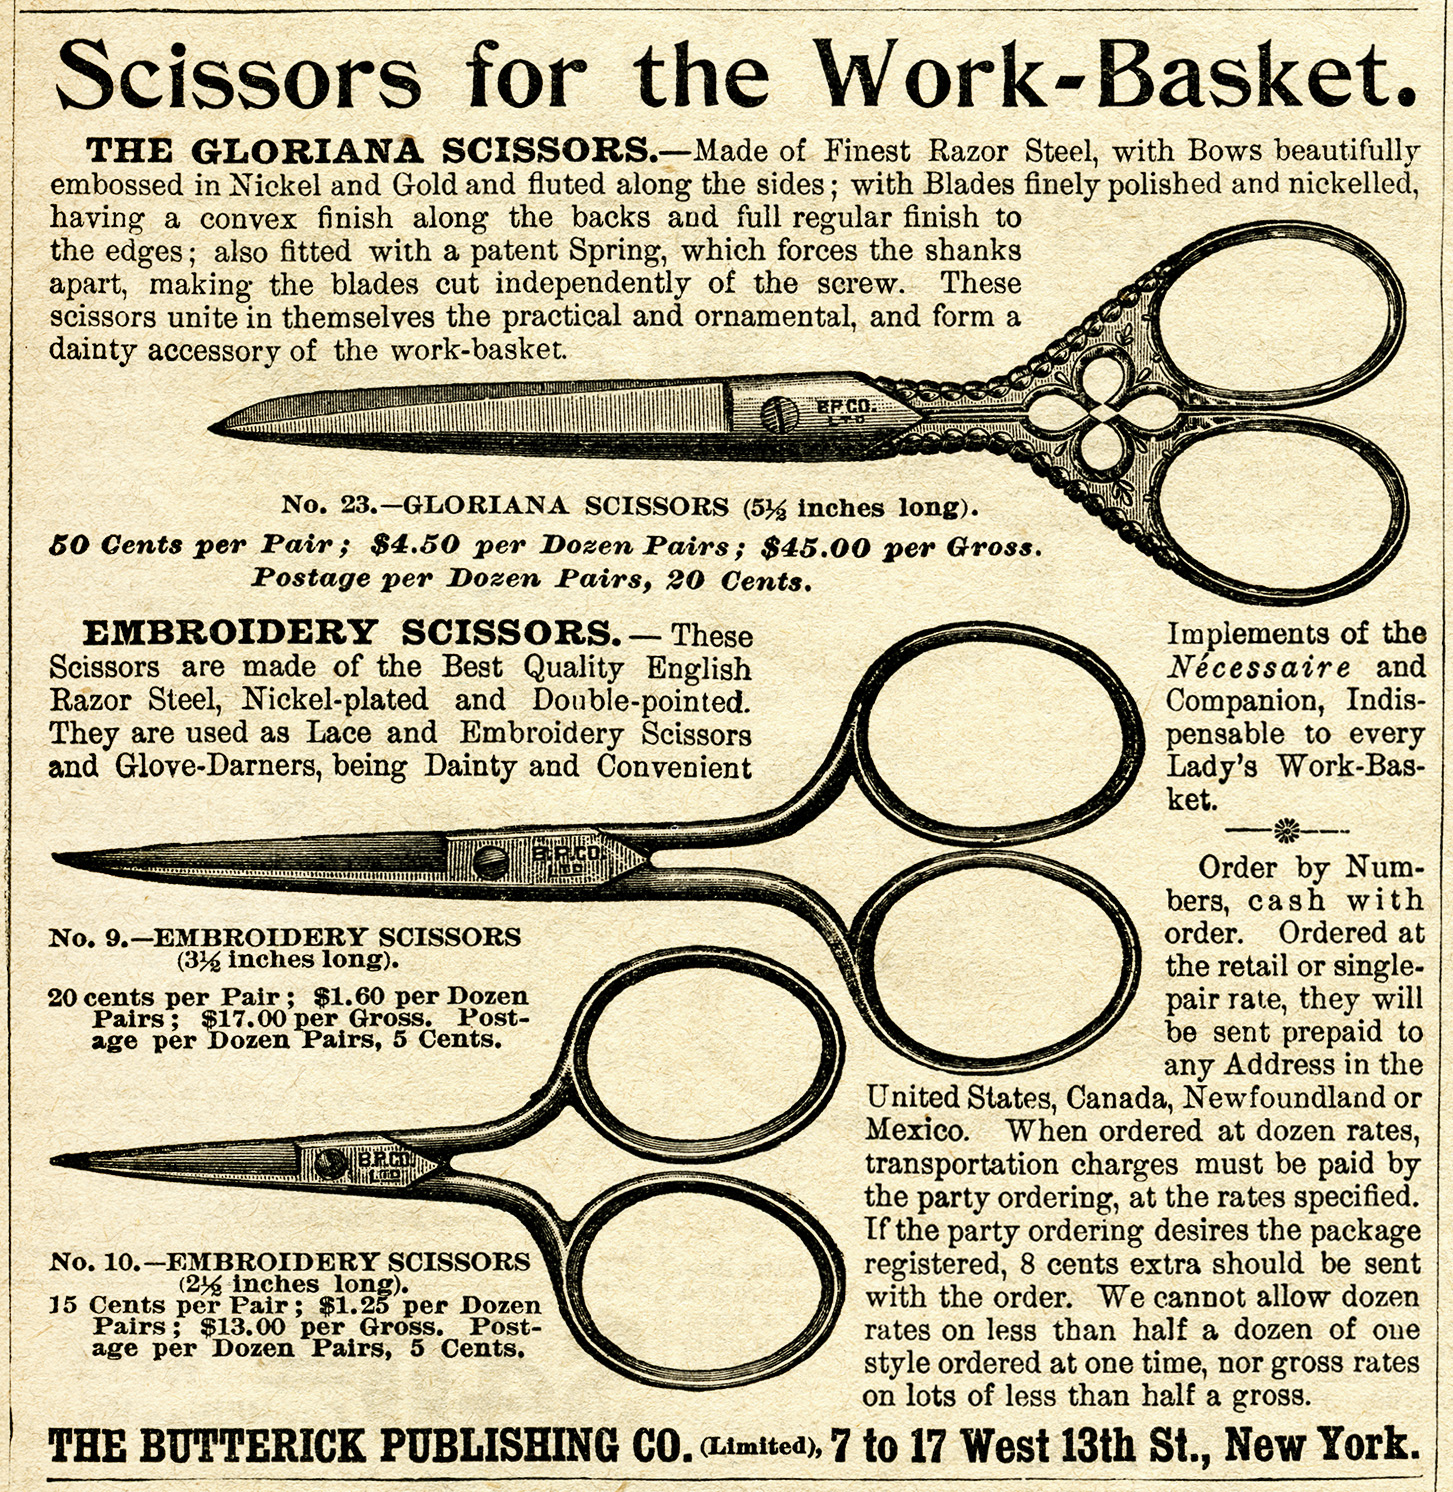 vintage sewing clip art, clipart scissors, old magazine advertisement, work basket scissors ad, free vintage image